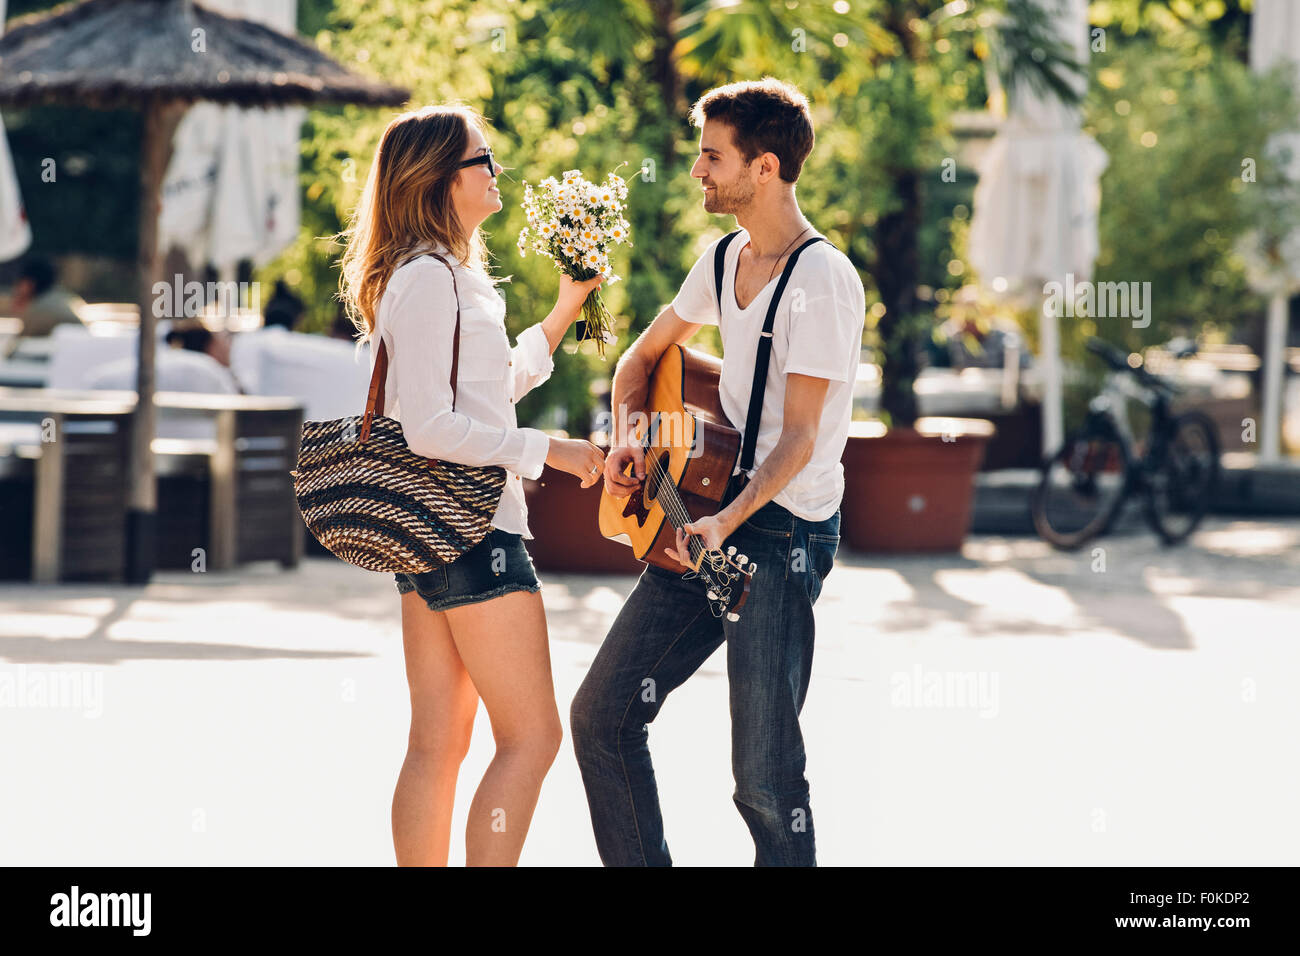 Loving young couple with guitar and bunch of flowers on the street - Stock Image